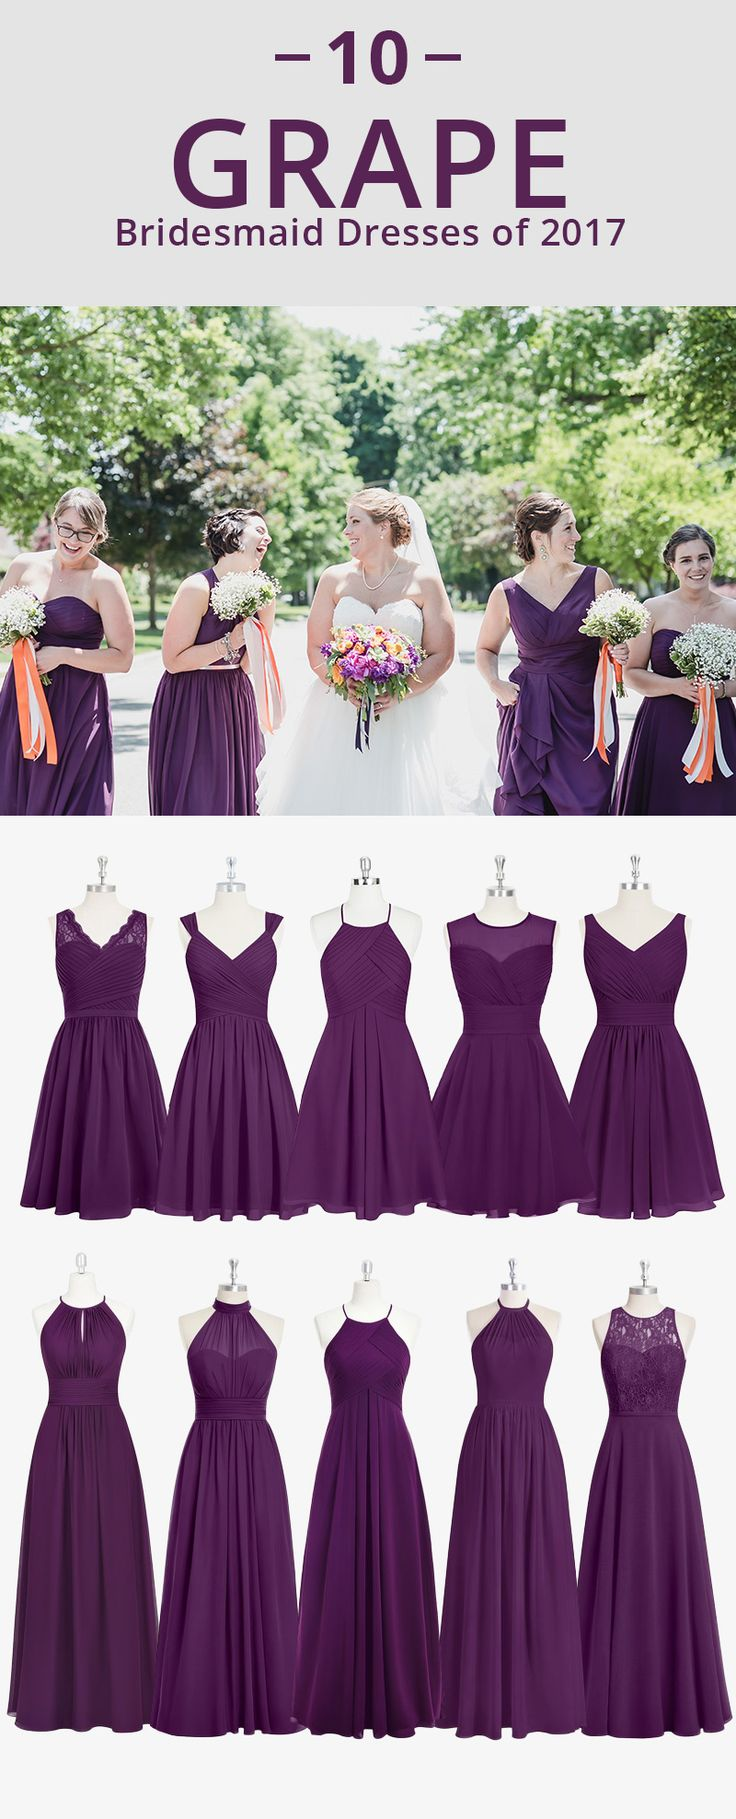 Dress your bridesmaid in this elegant rich purple! Available in sizes 0-30 and free custom sizing! Every woman deserves their dream dress, that fits right while still being budget friendly!  Photo by Kari Dawson Photography.